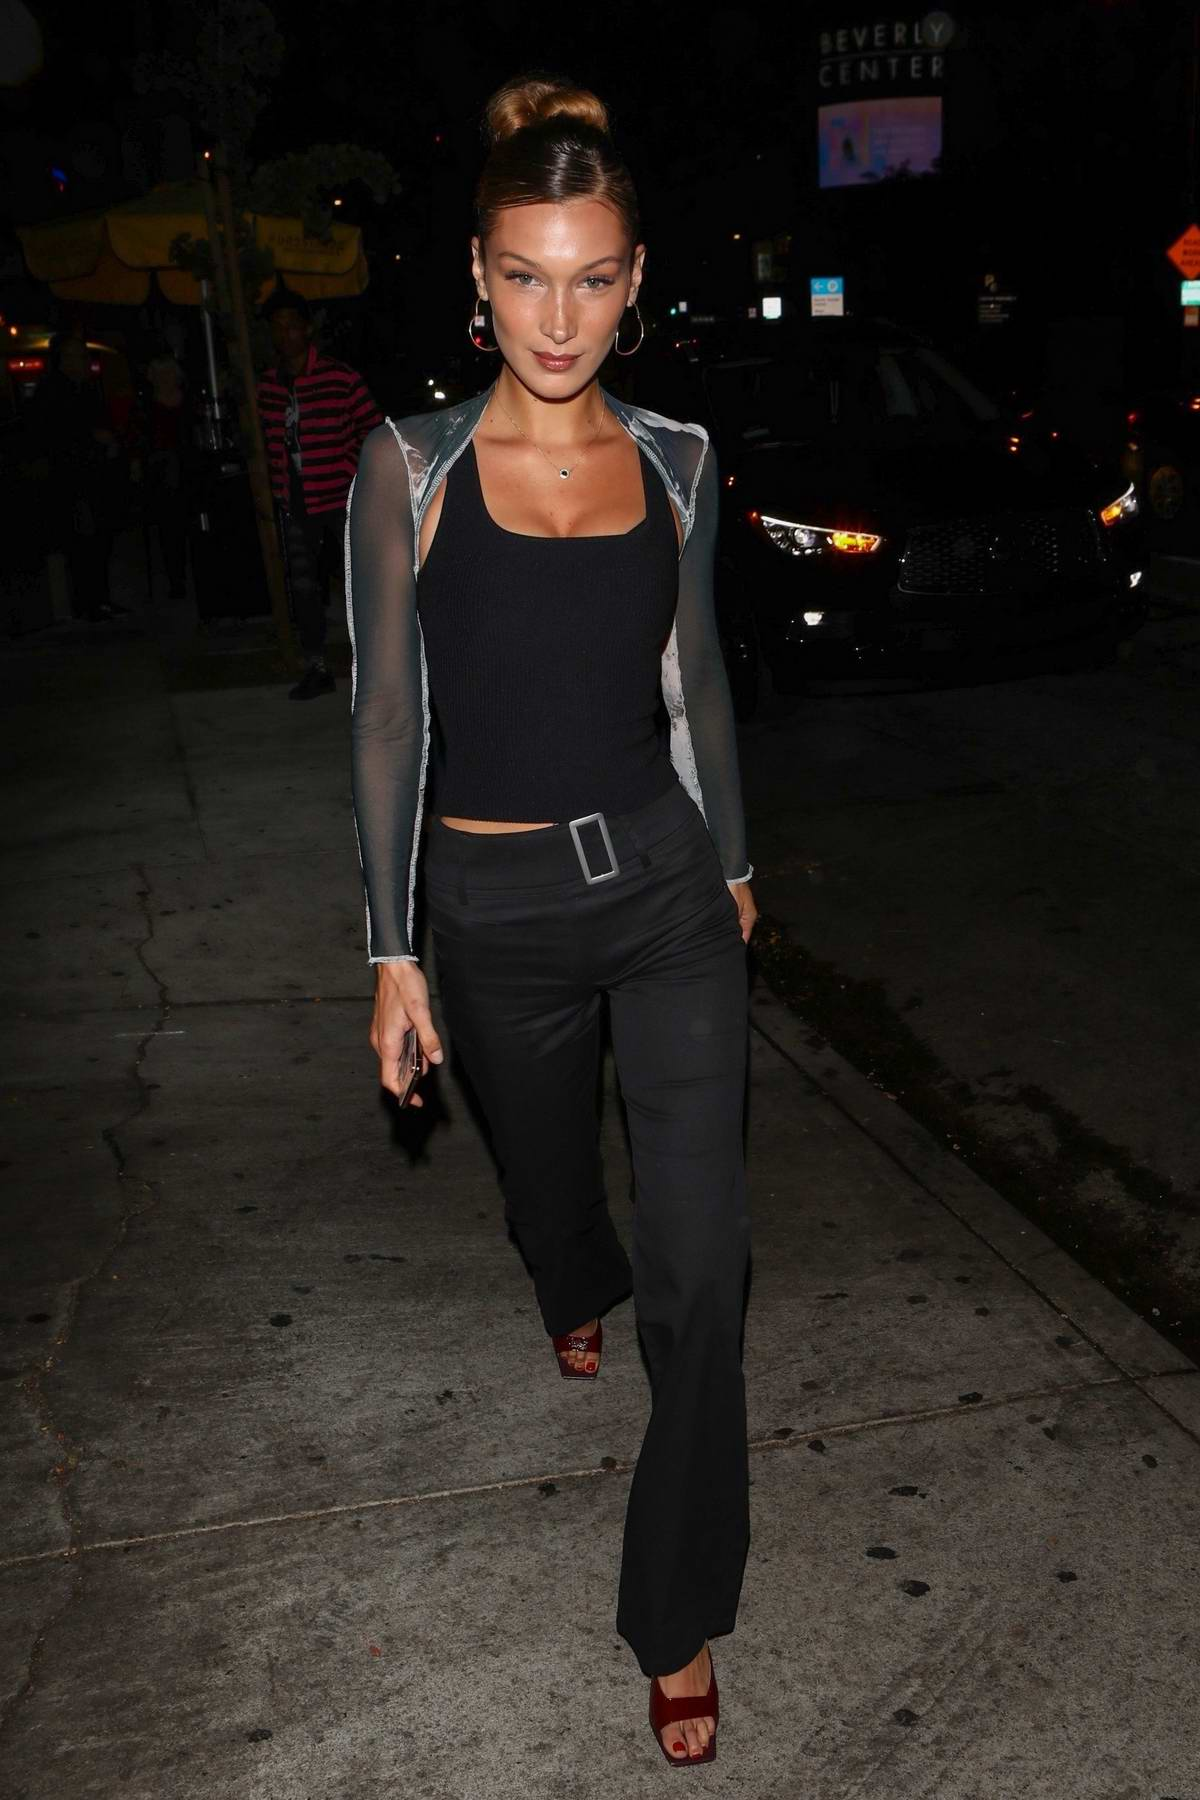 Bella Hadid dons all-black as she arrives for Dave Chappelle's stand up show at the Peppermint Club in West Hollywood, Los Angeles